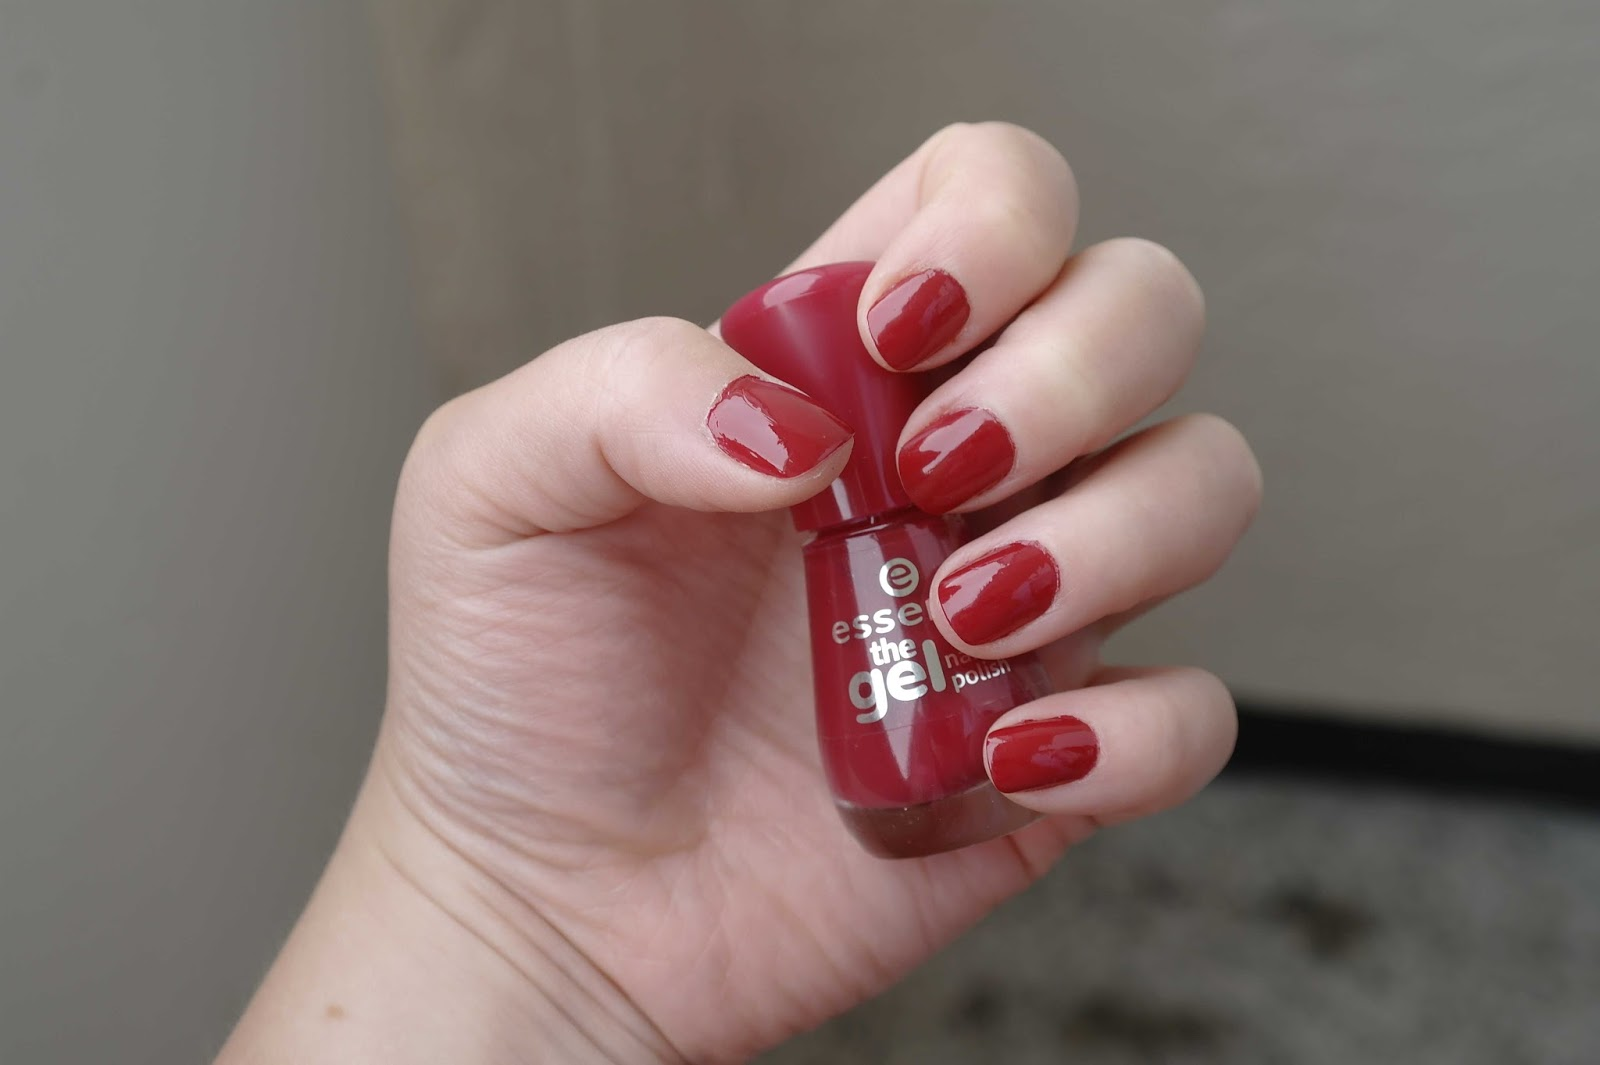 Dreamcatcher Essence The Gel Nail Polish In 13 True Love Late Polished Monday 14